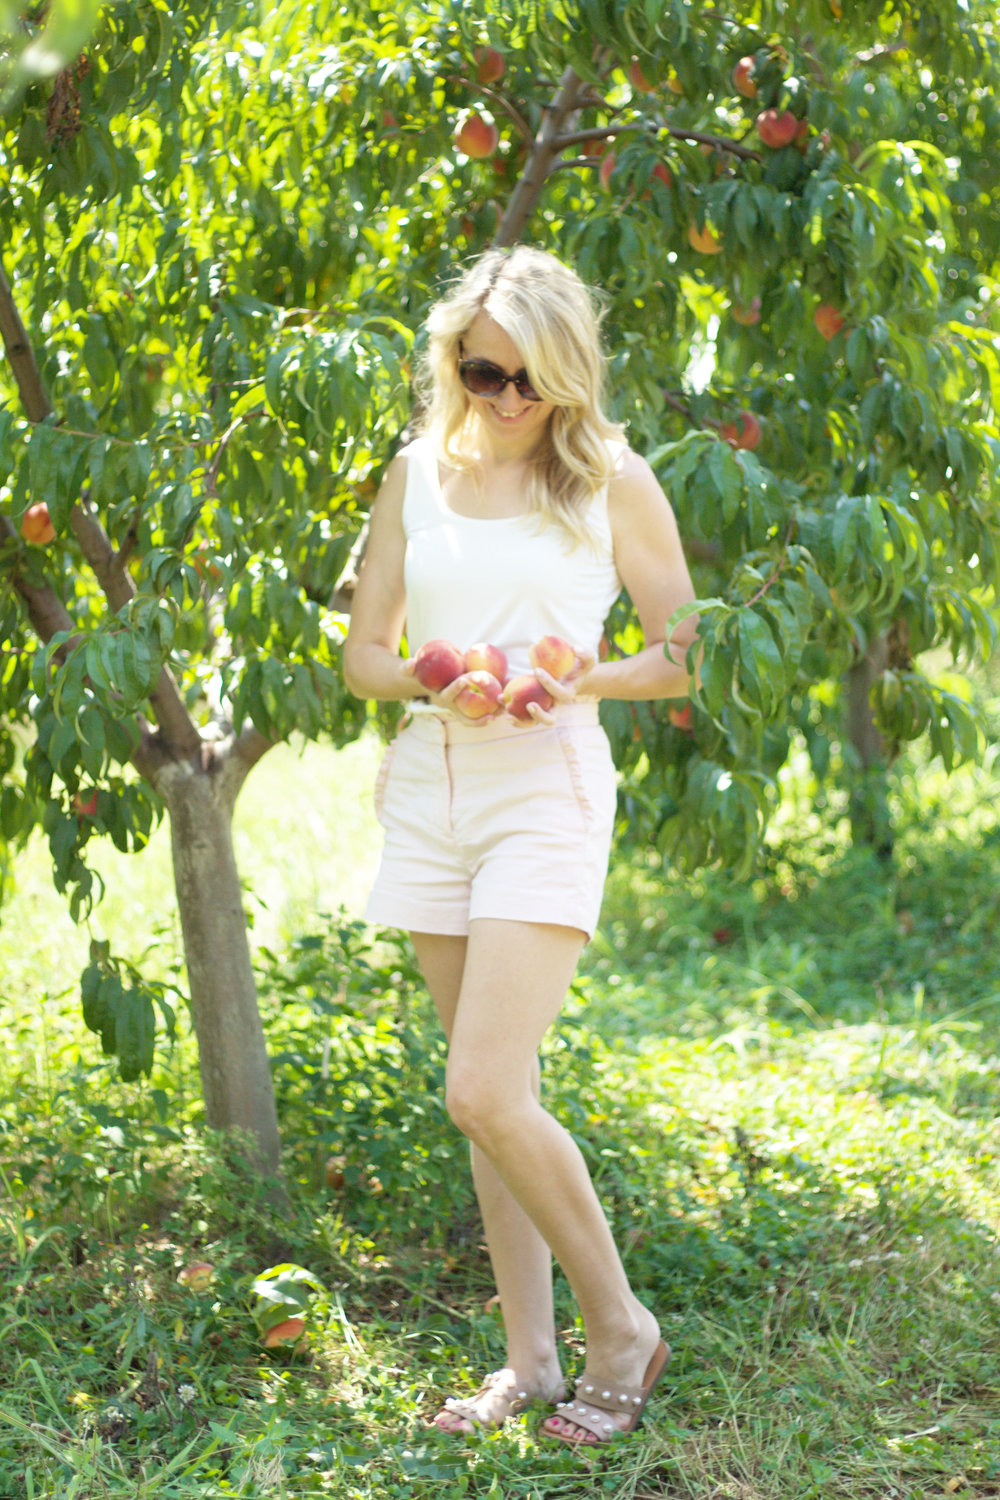 Peach Picking So Dressed Up